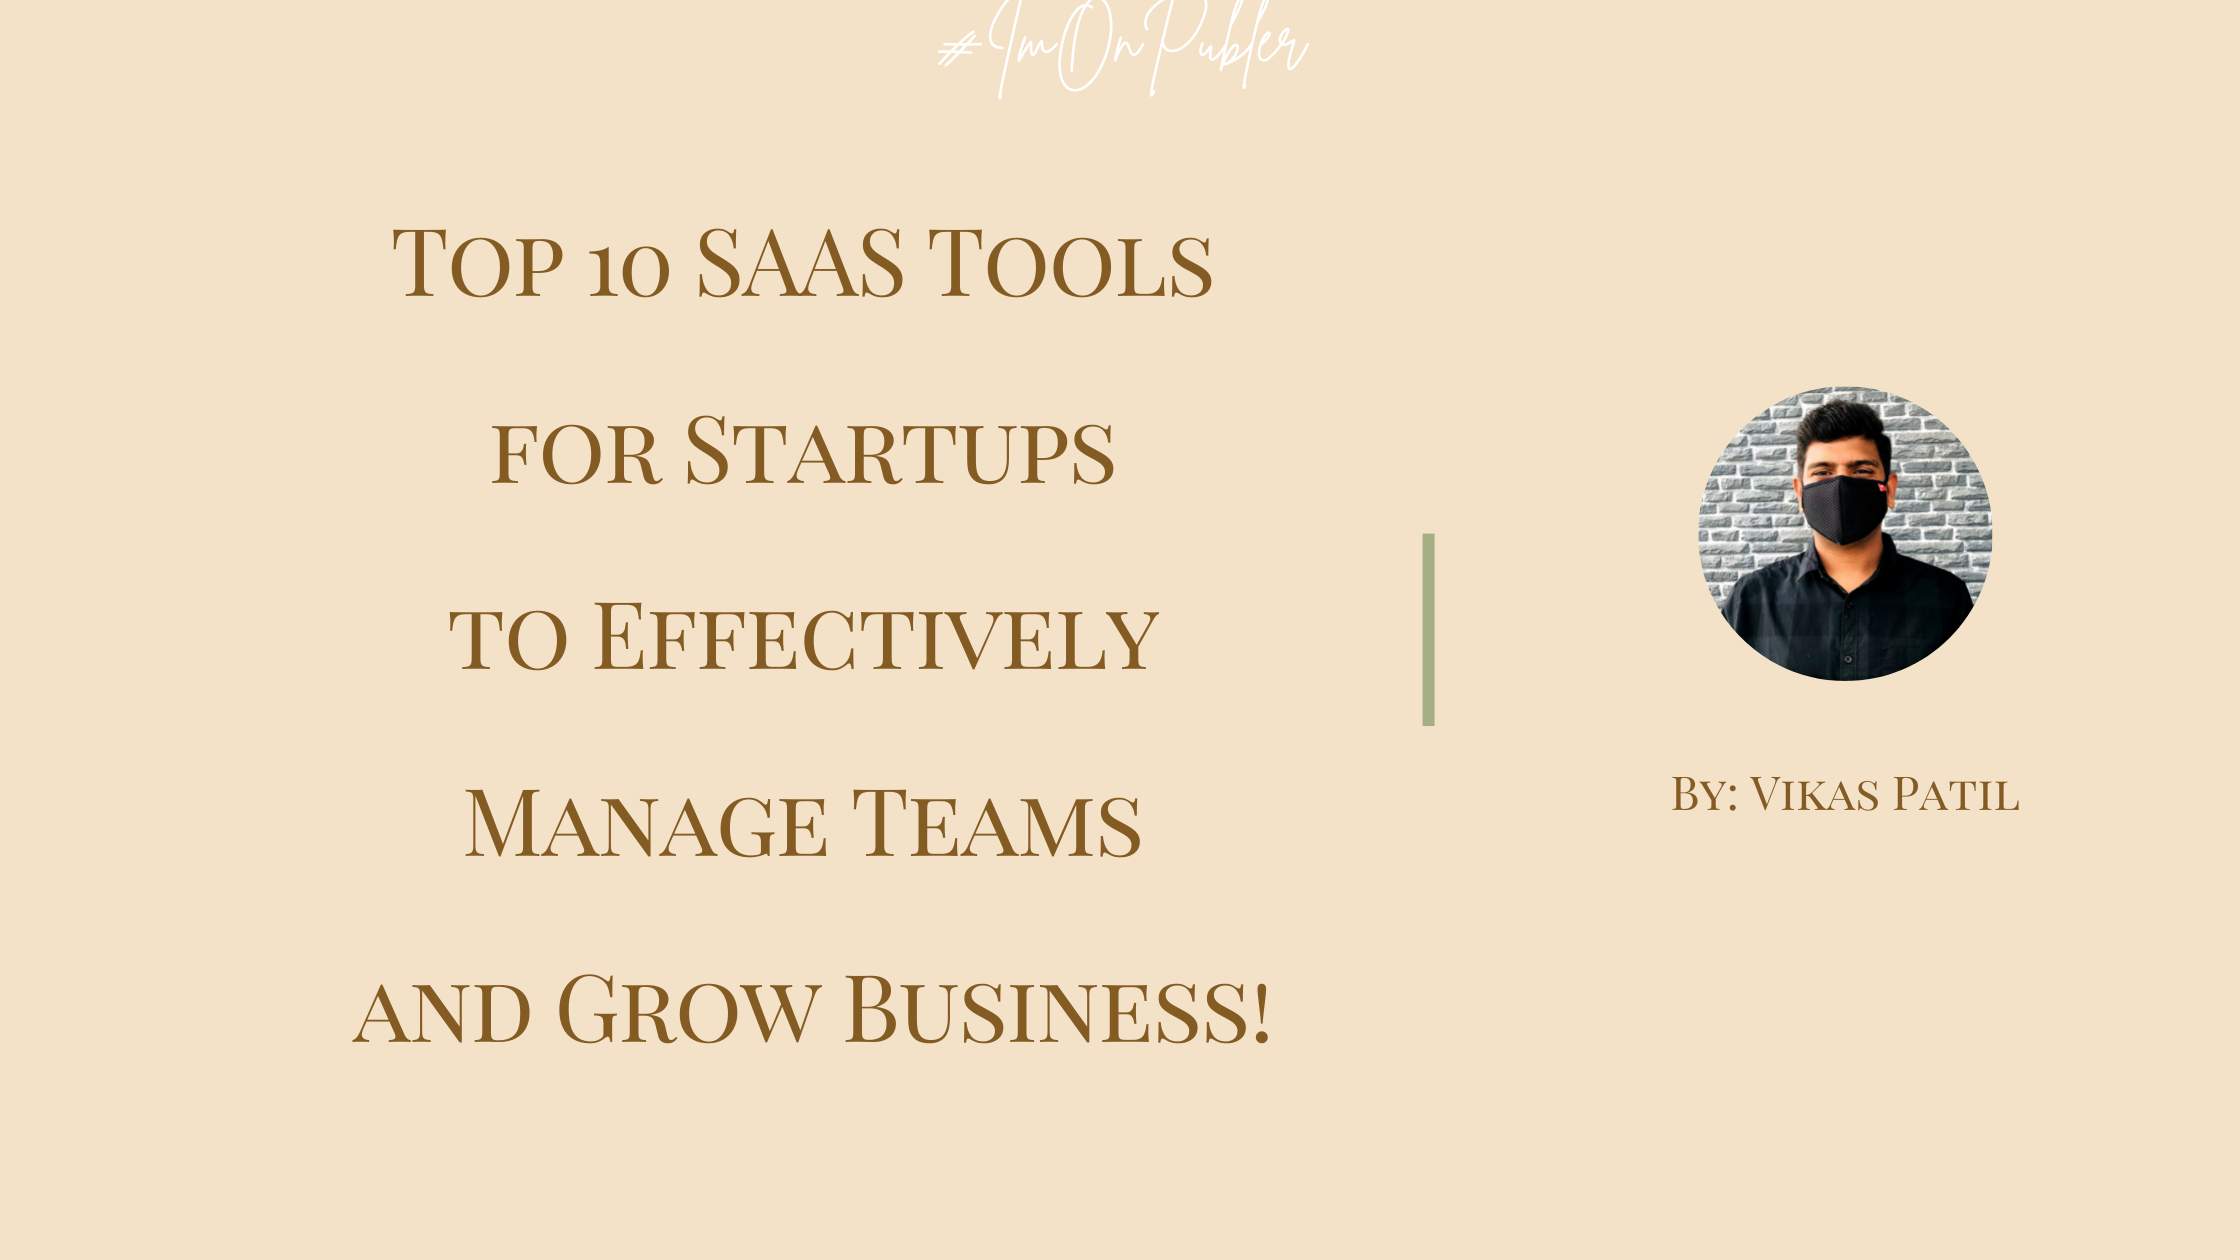 Top 10 SAAS Tools for Startups to Effectively Manage Teams and Grow Business! by Vikas Patil